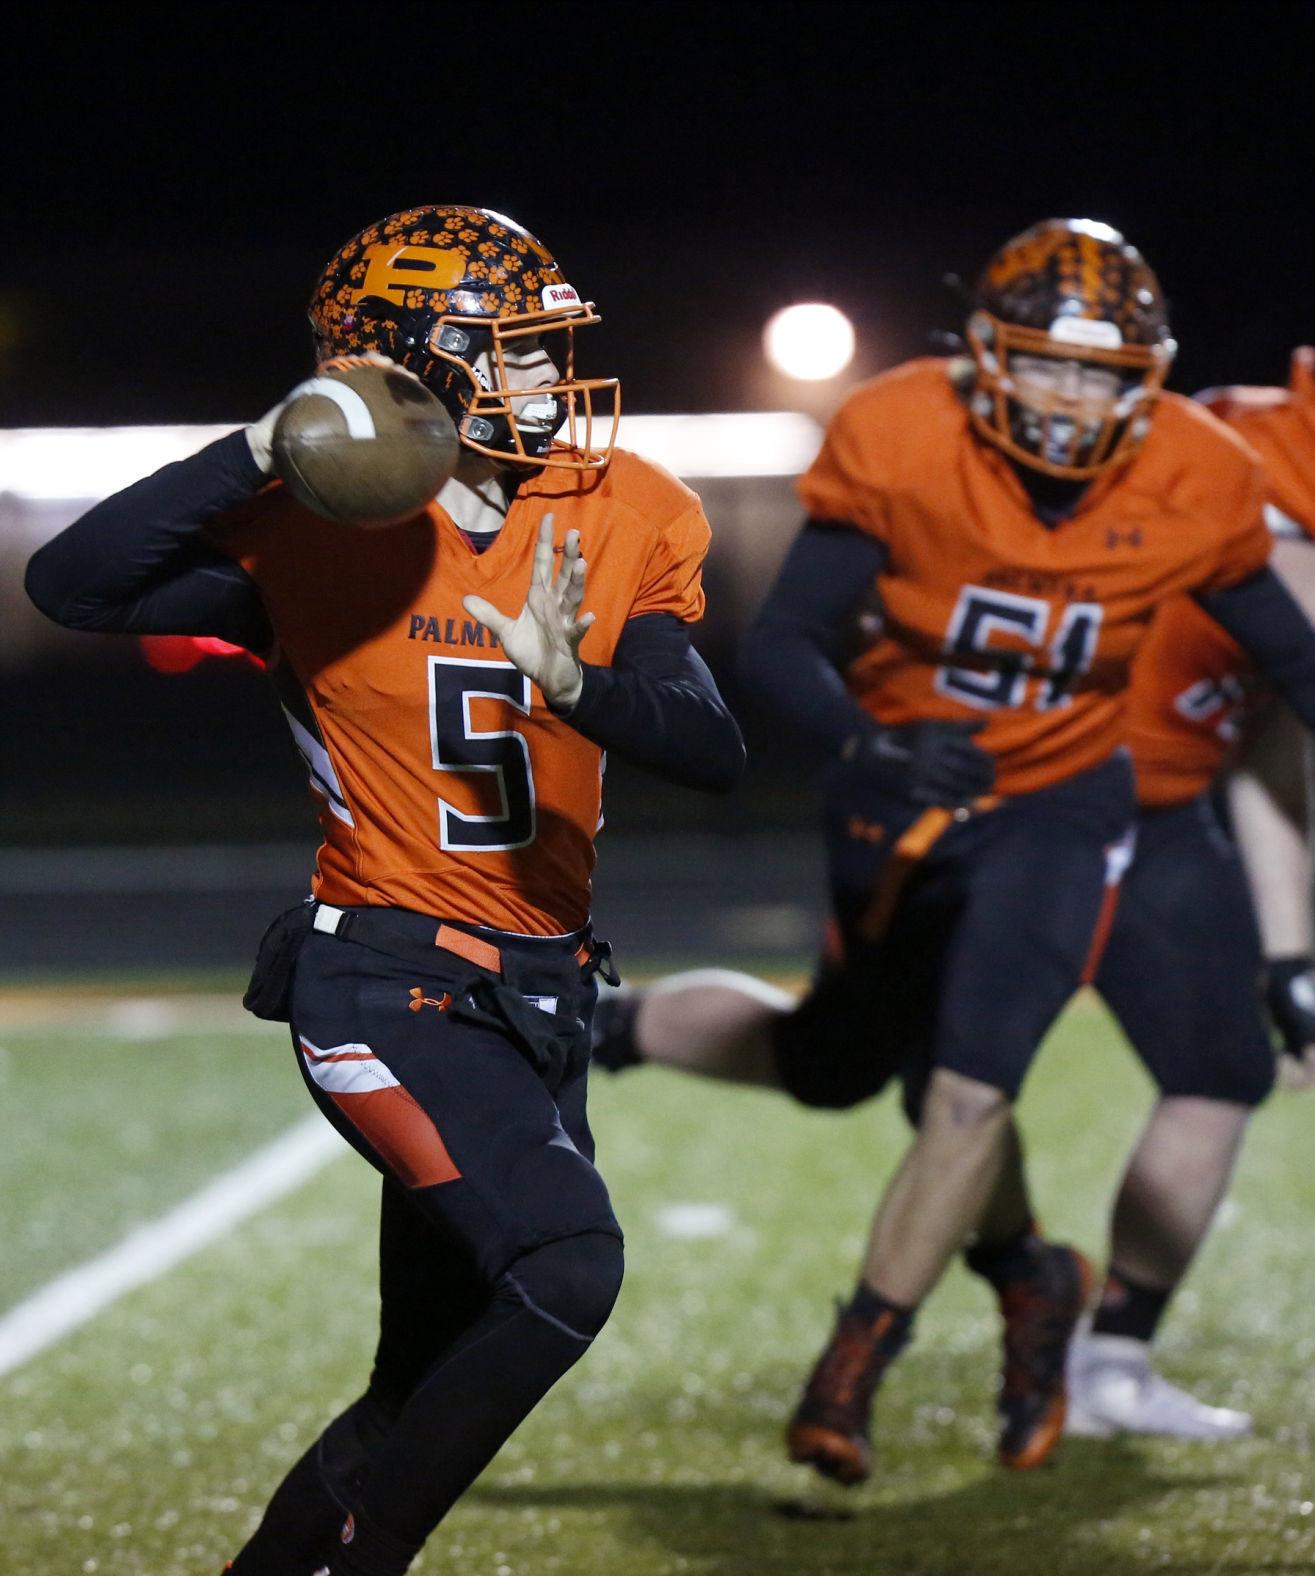 Palmyra expecting a 'tough game' in state quarterfinals